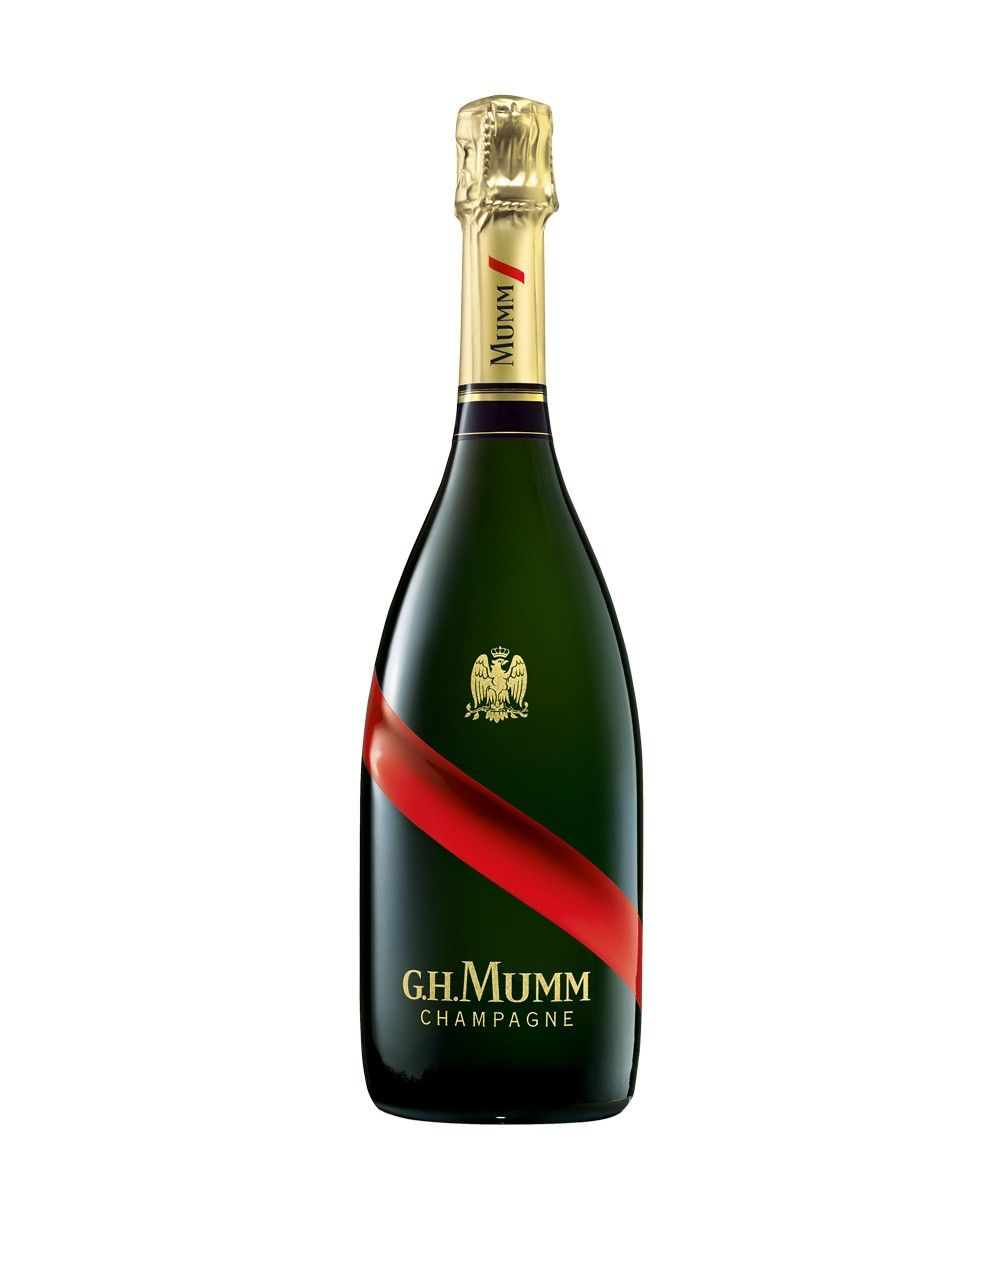 G H Mumm Grand Cordon Champagne Buy Online Or Send As A